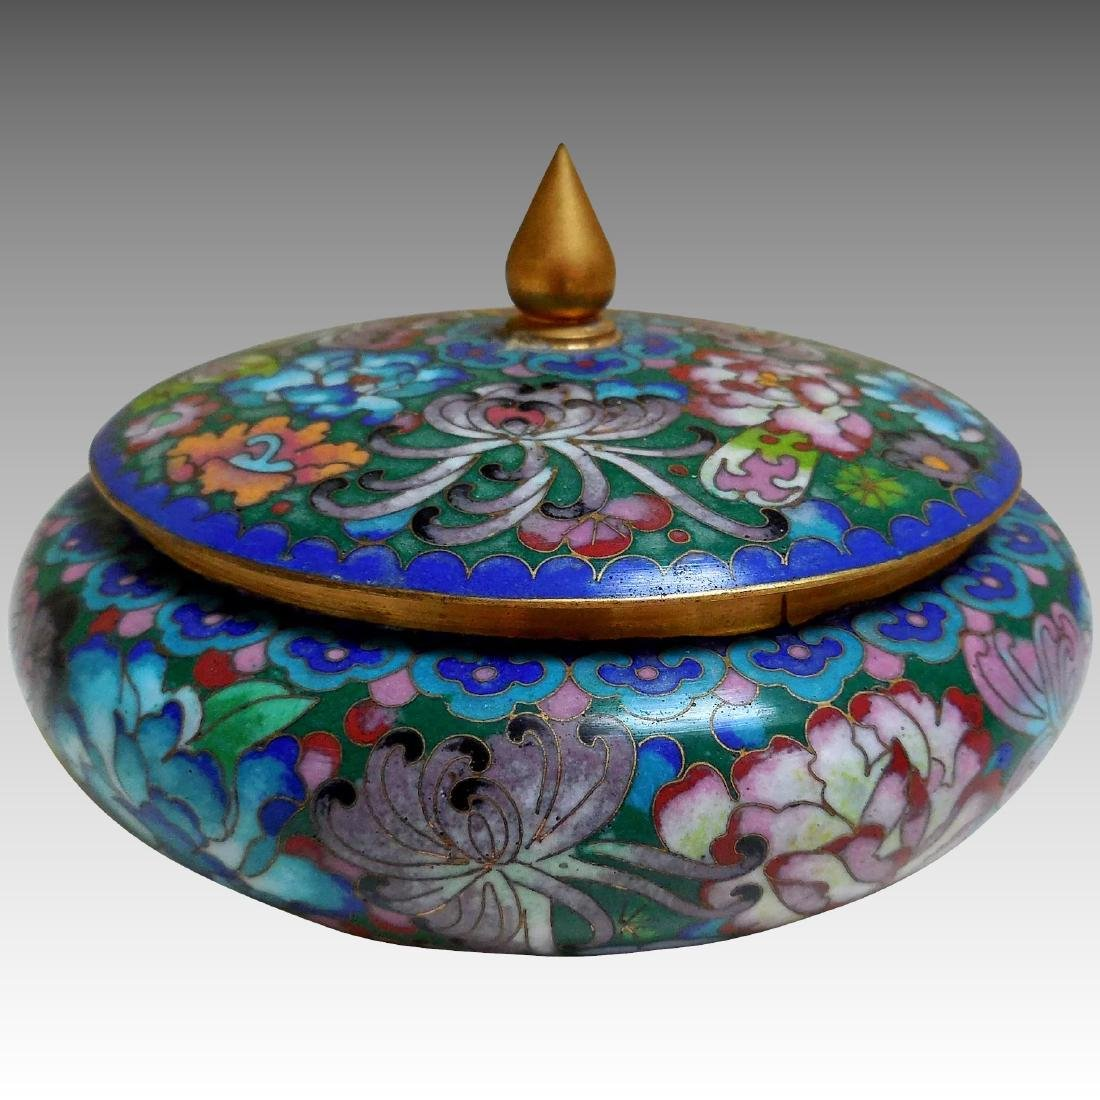 Lady's Cloisonne Powder Box